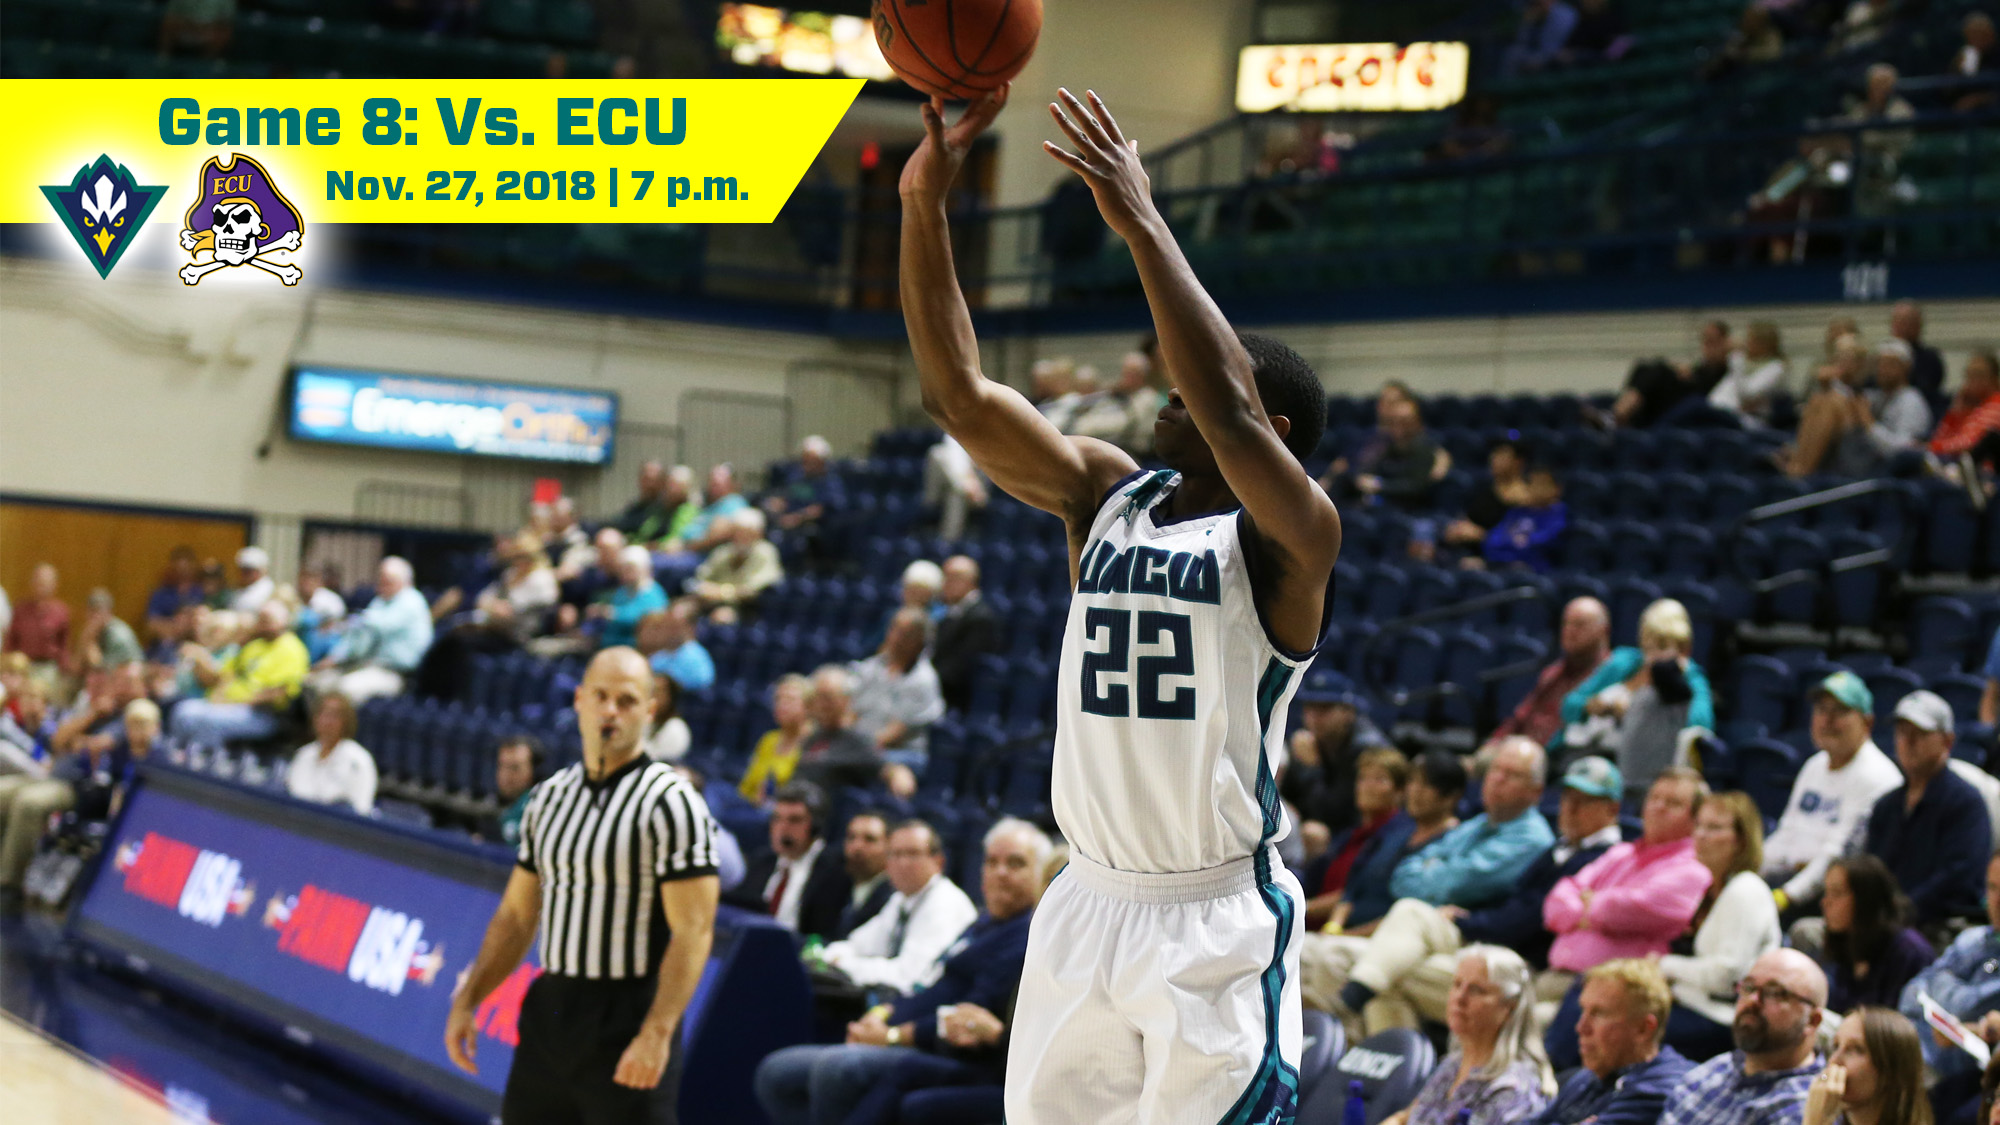 seahawks, pirates meet for 66th time - unc wilmington athletics